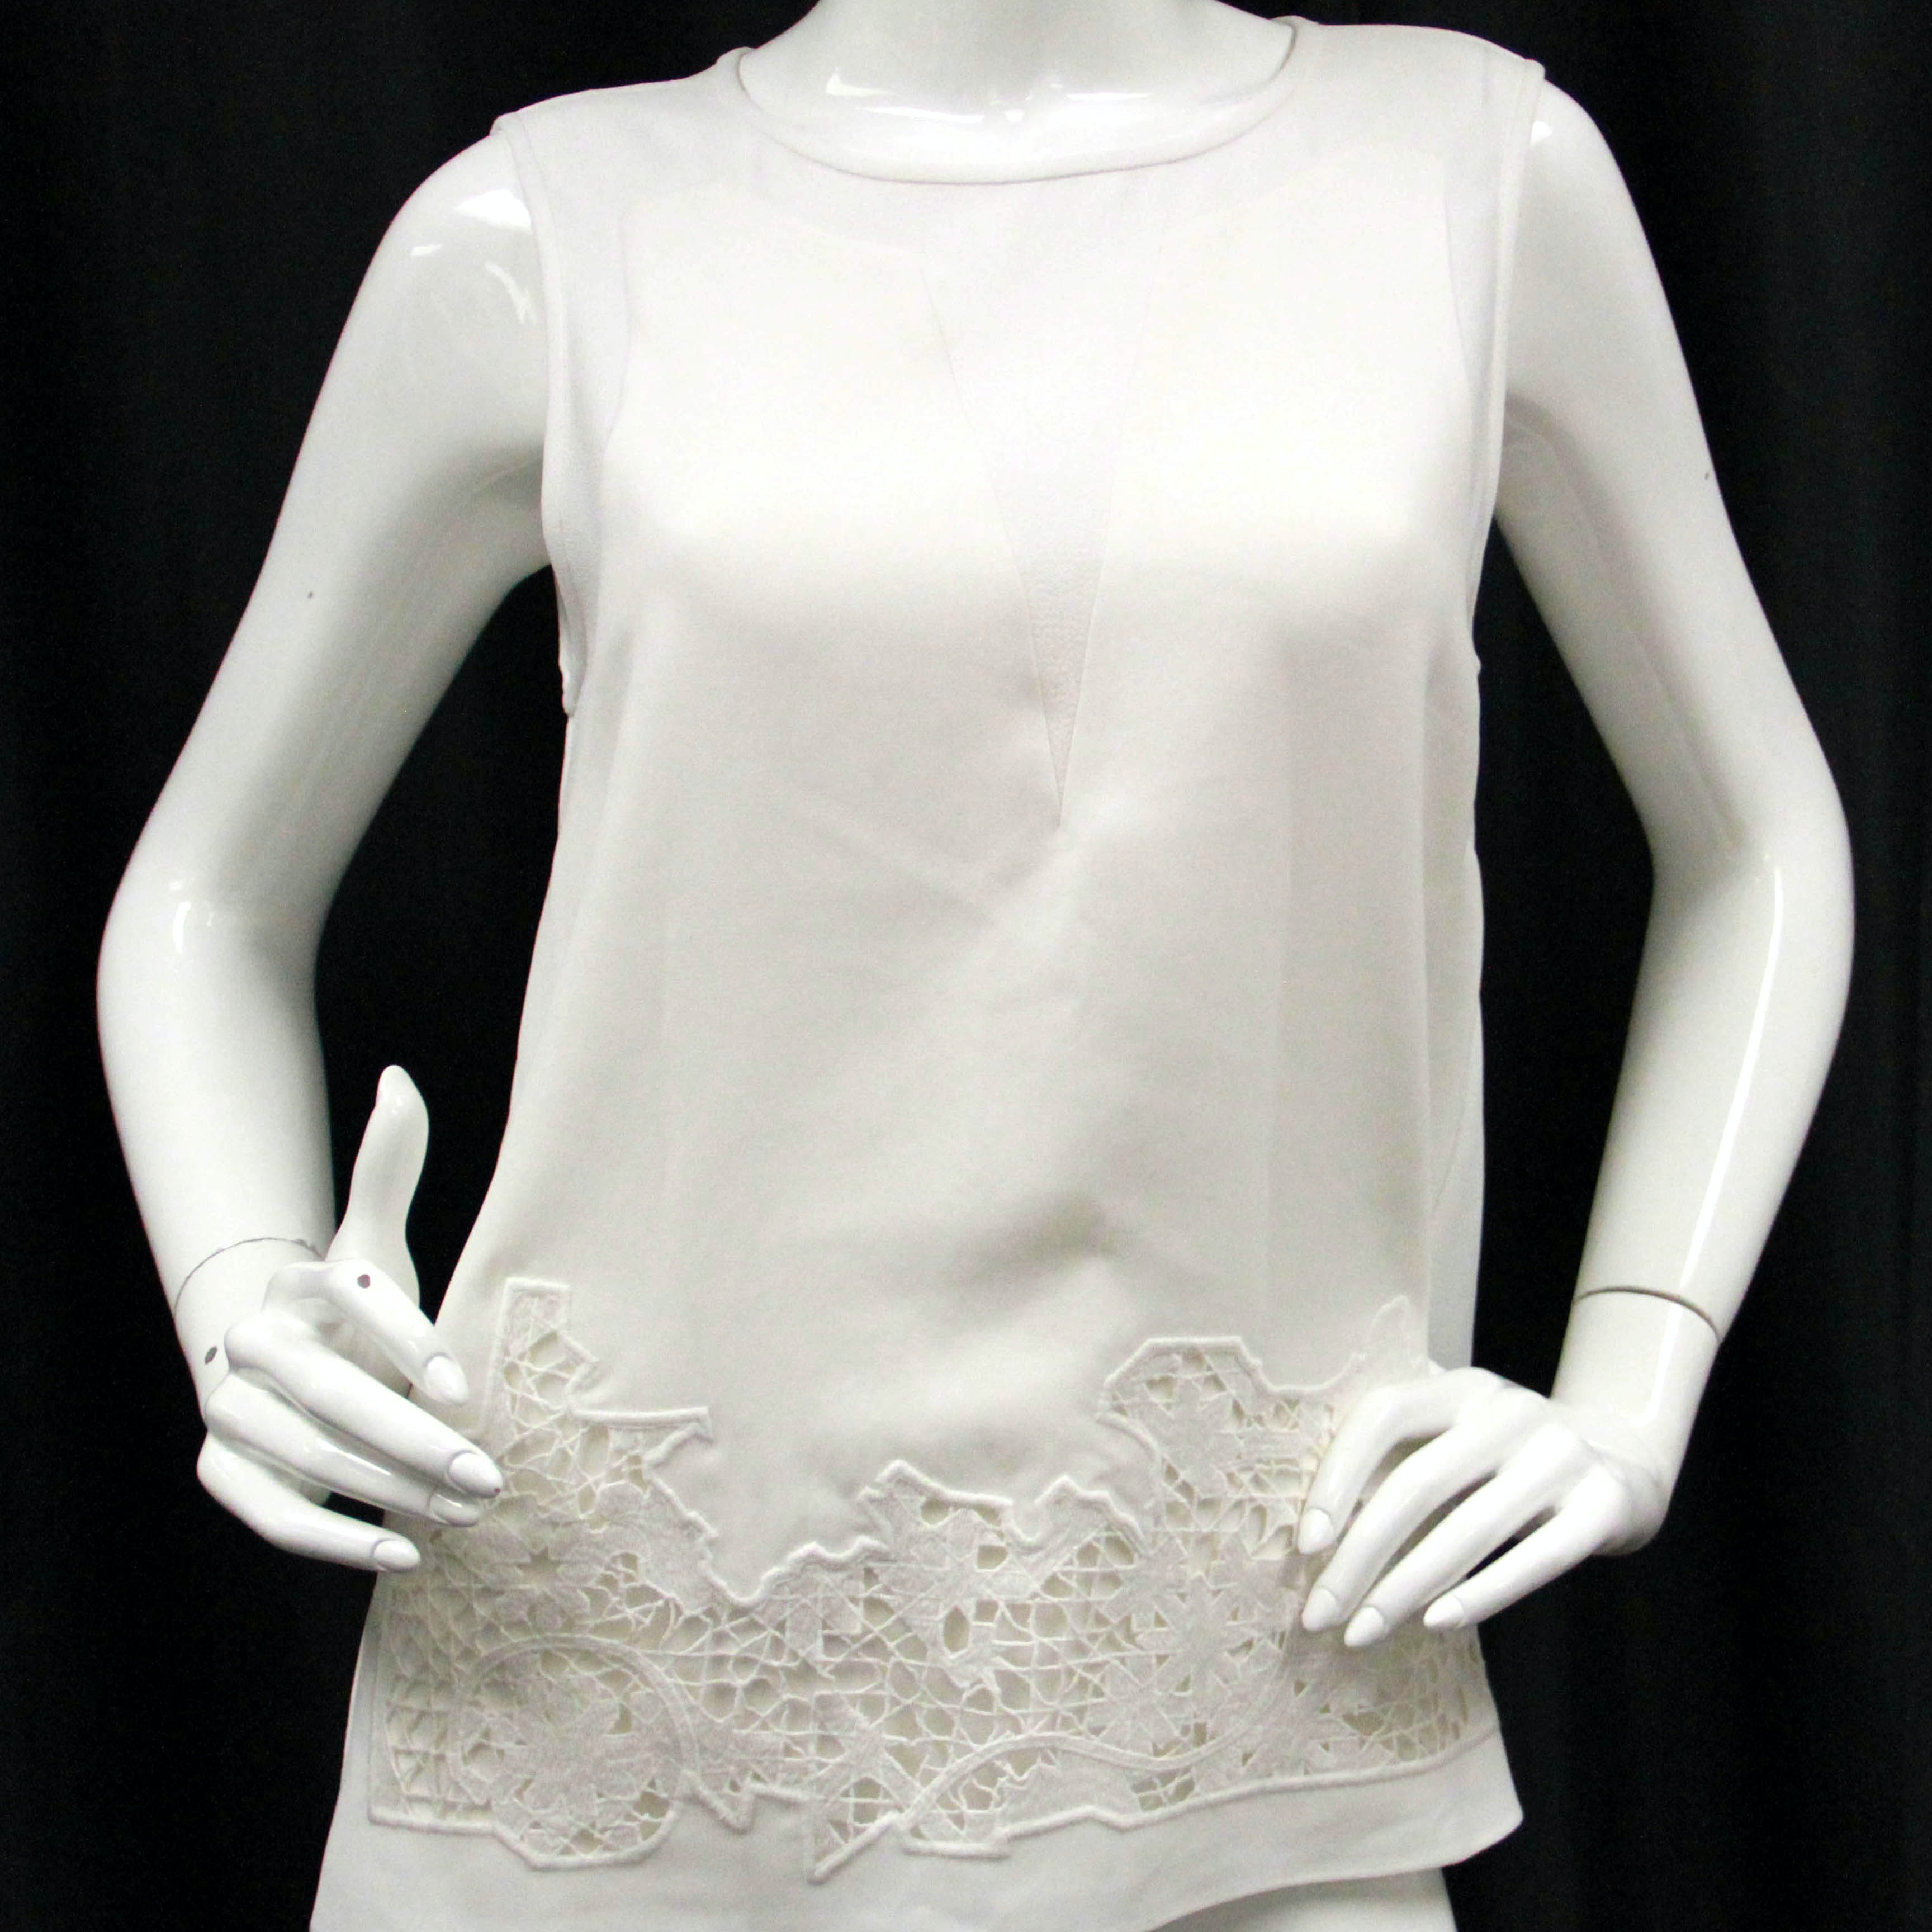 Contemporary Lace Panel Blouse by Tibi, New with Tags